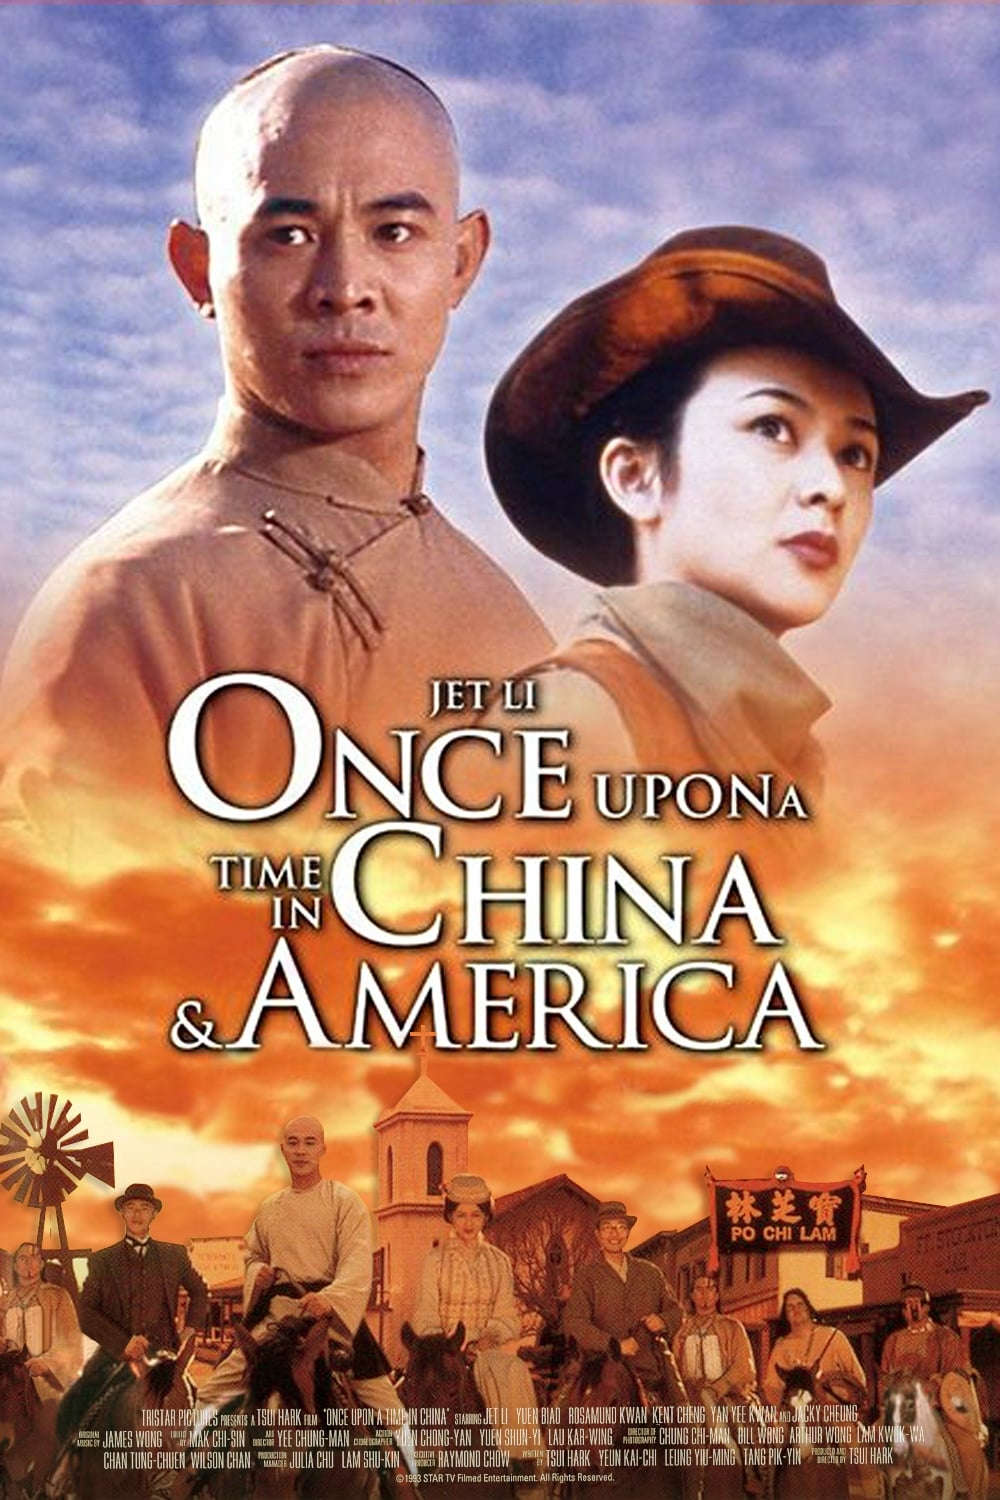 Once Upon a Time in China and America Trailer